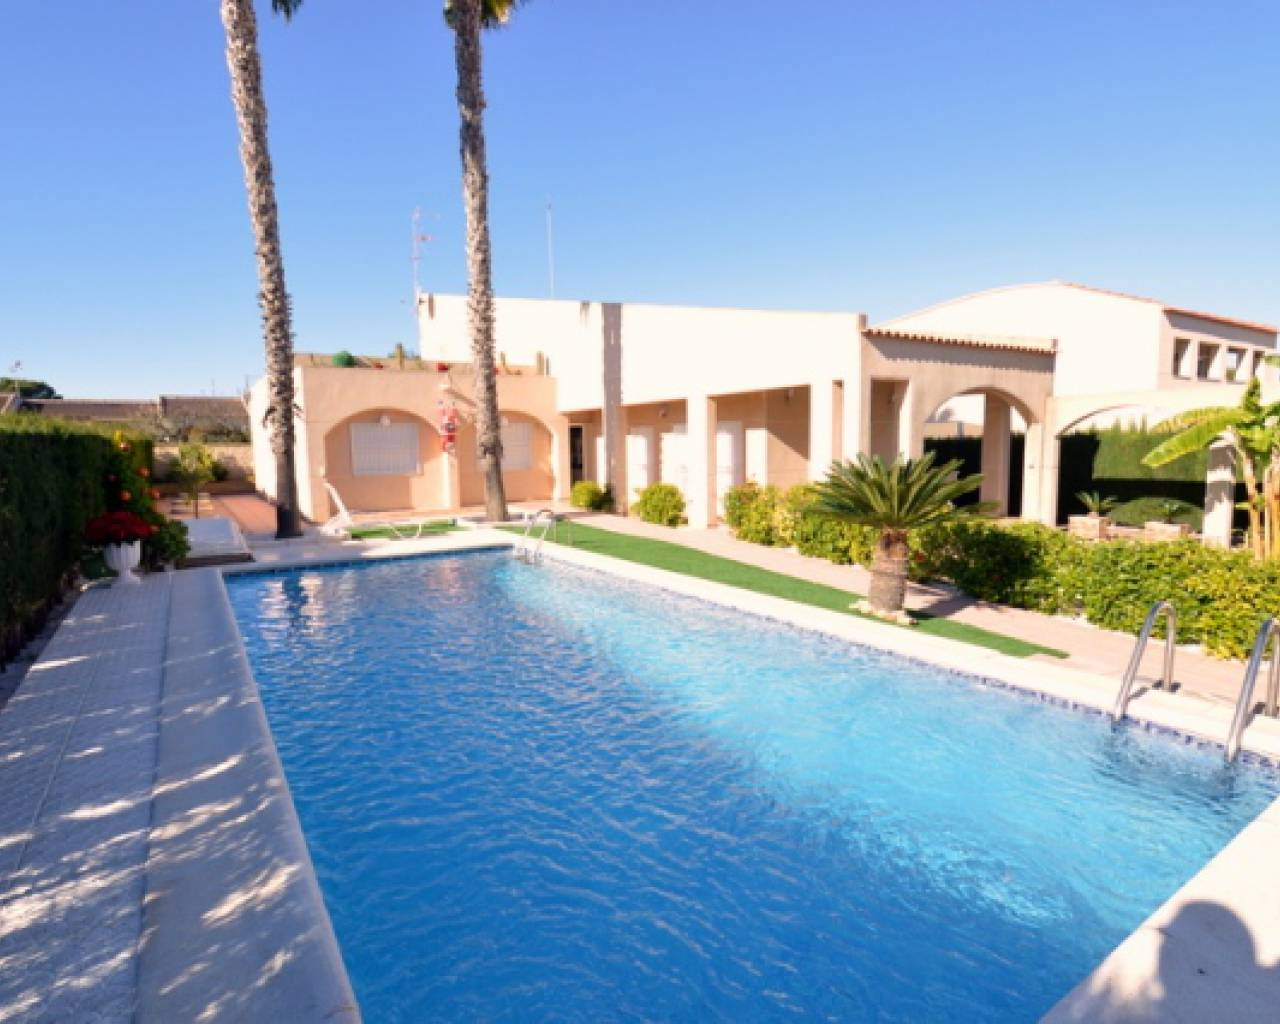 Detached Villa - Sale - Orihuela Costa - Los Balcones